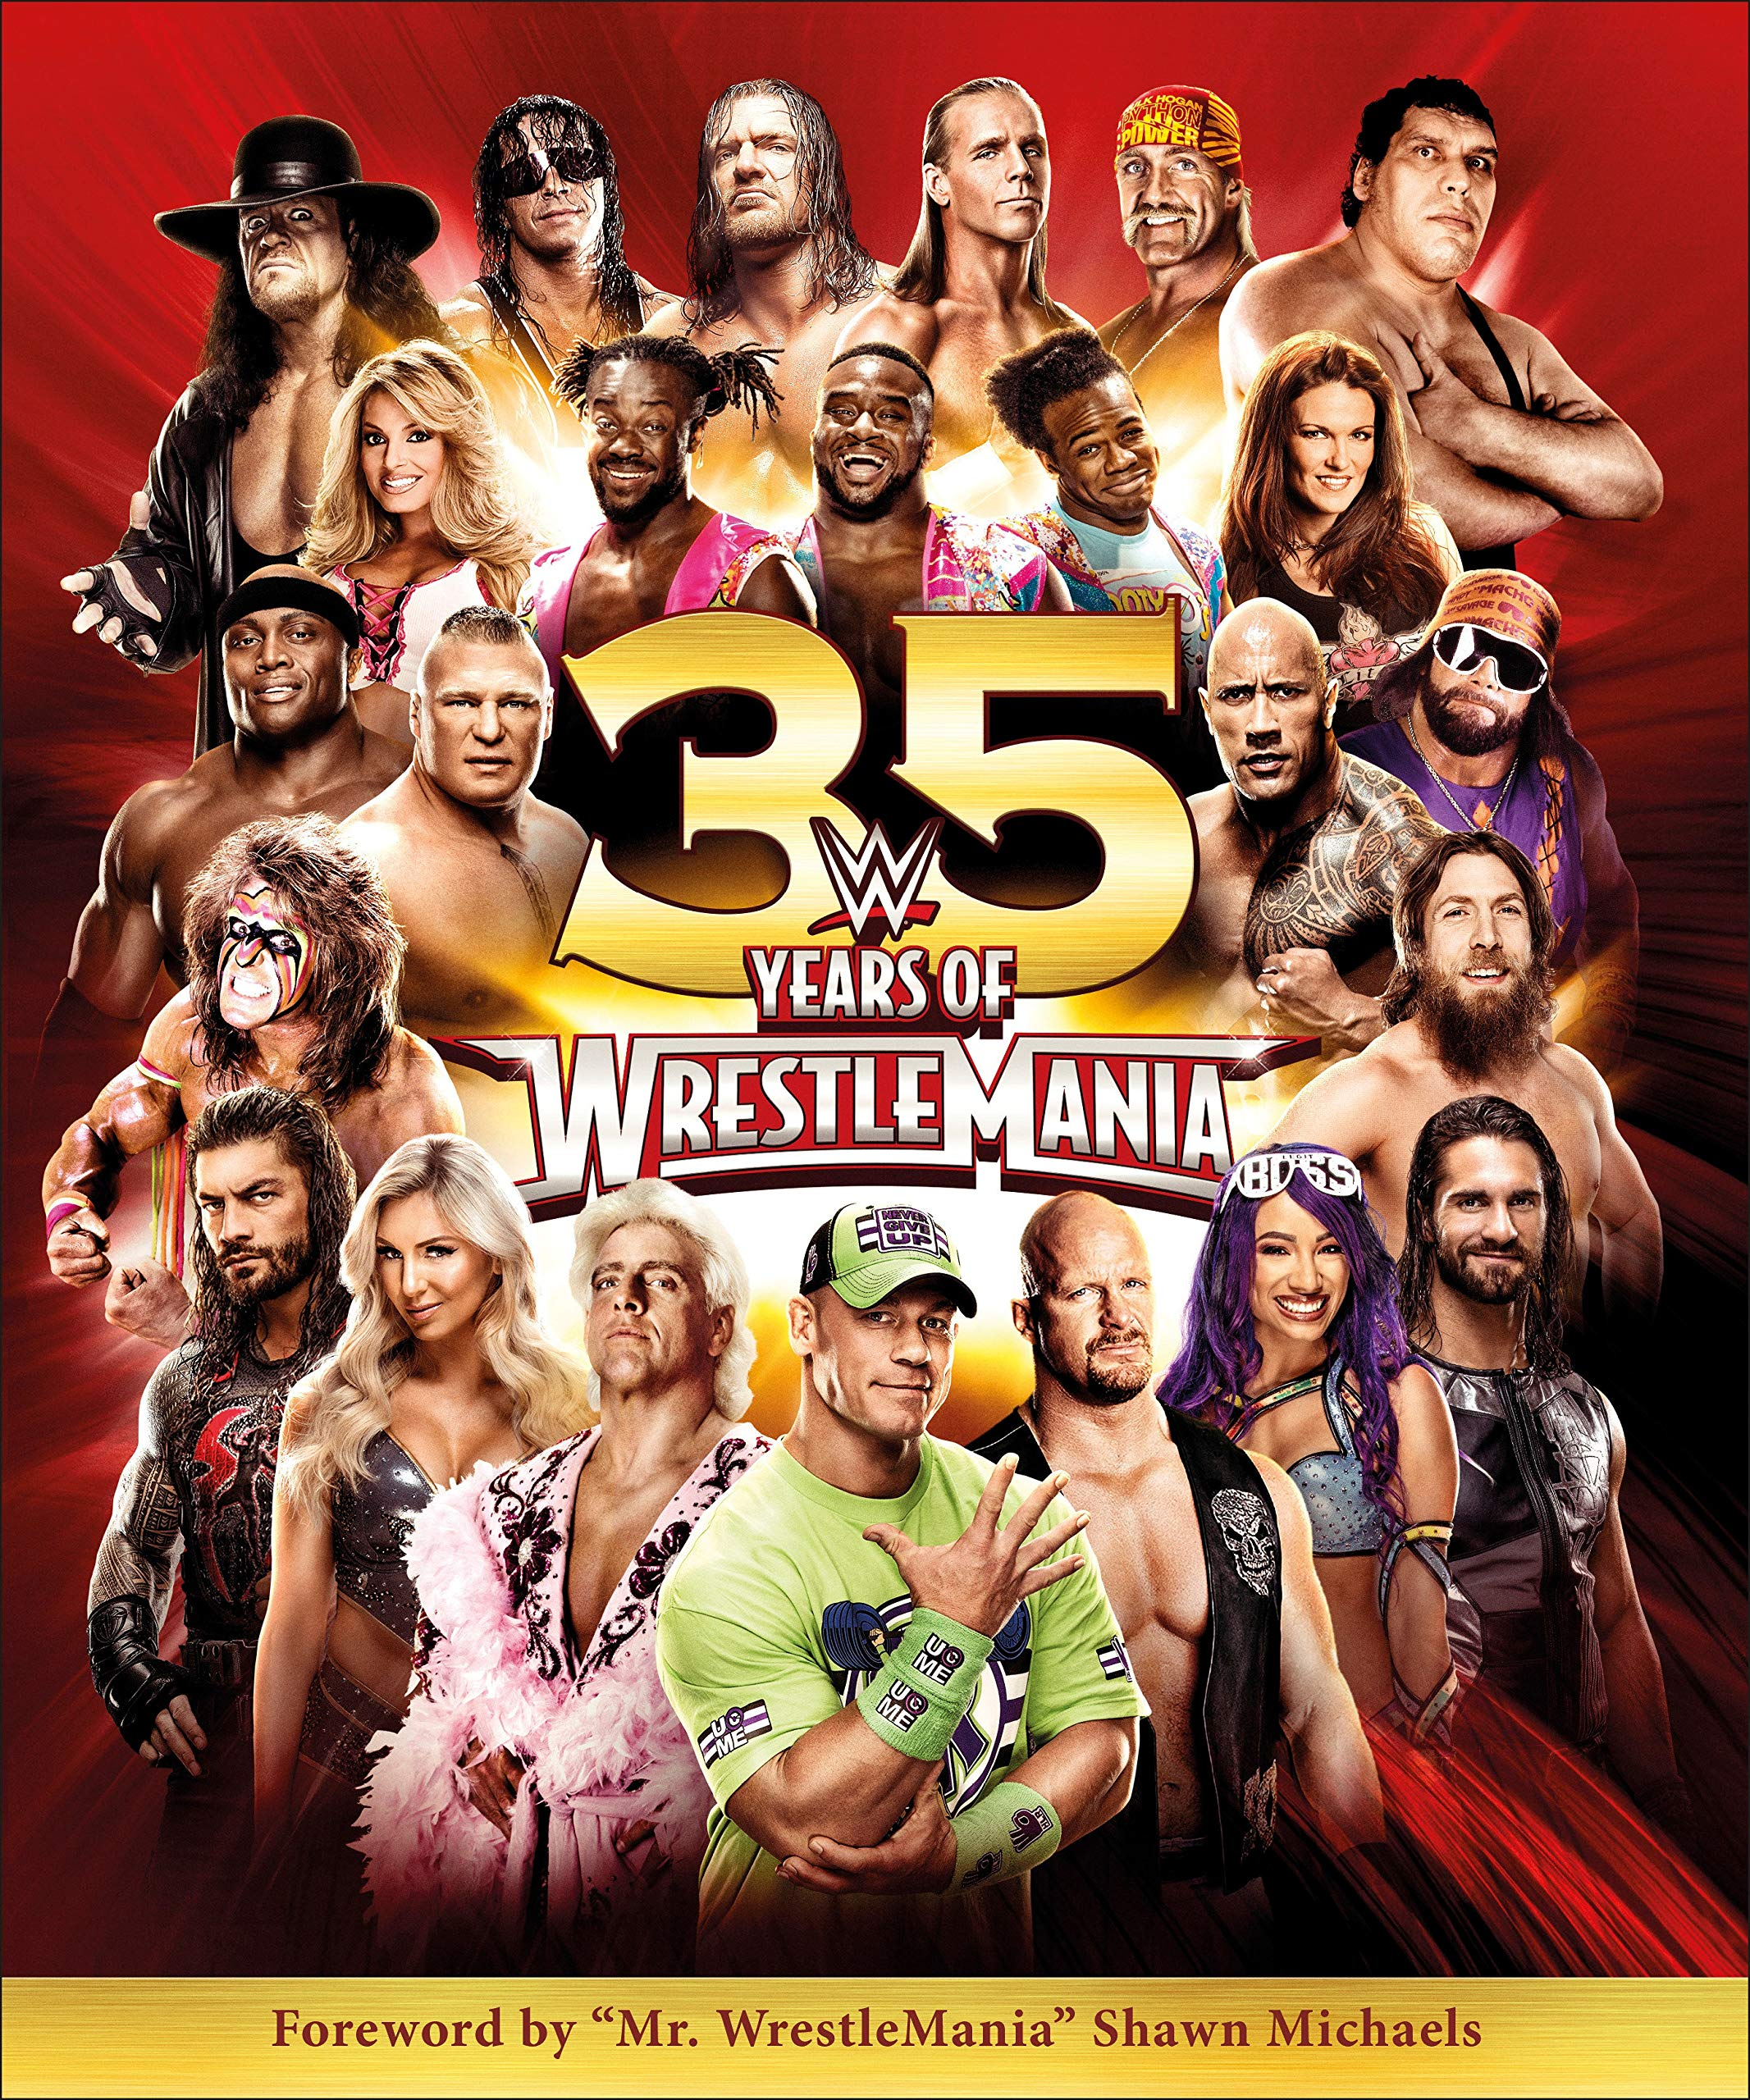 Image OfWWE 35 Years Of Wrestlemania